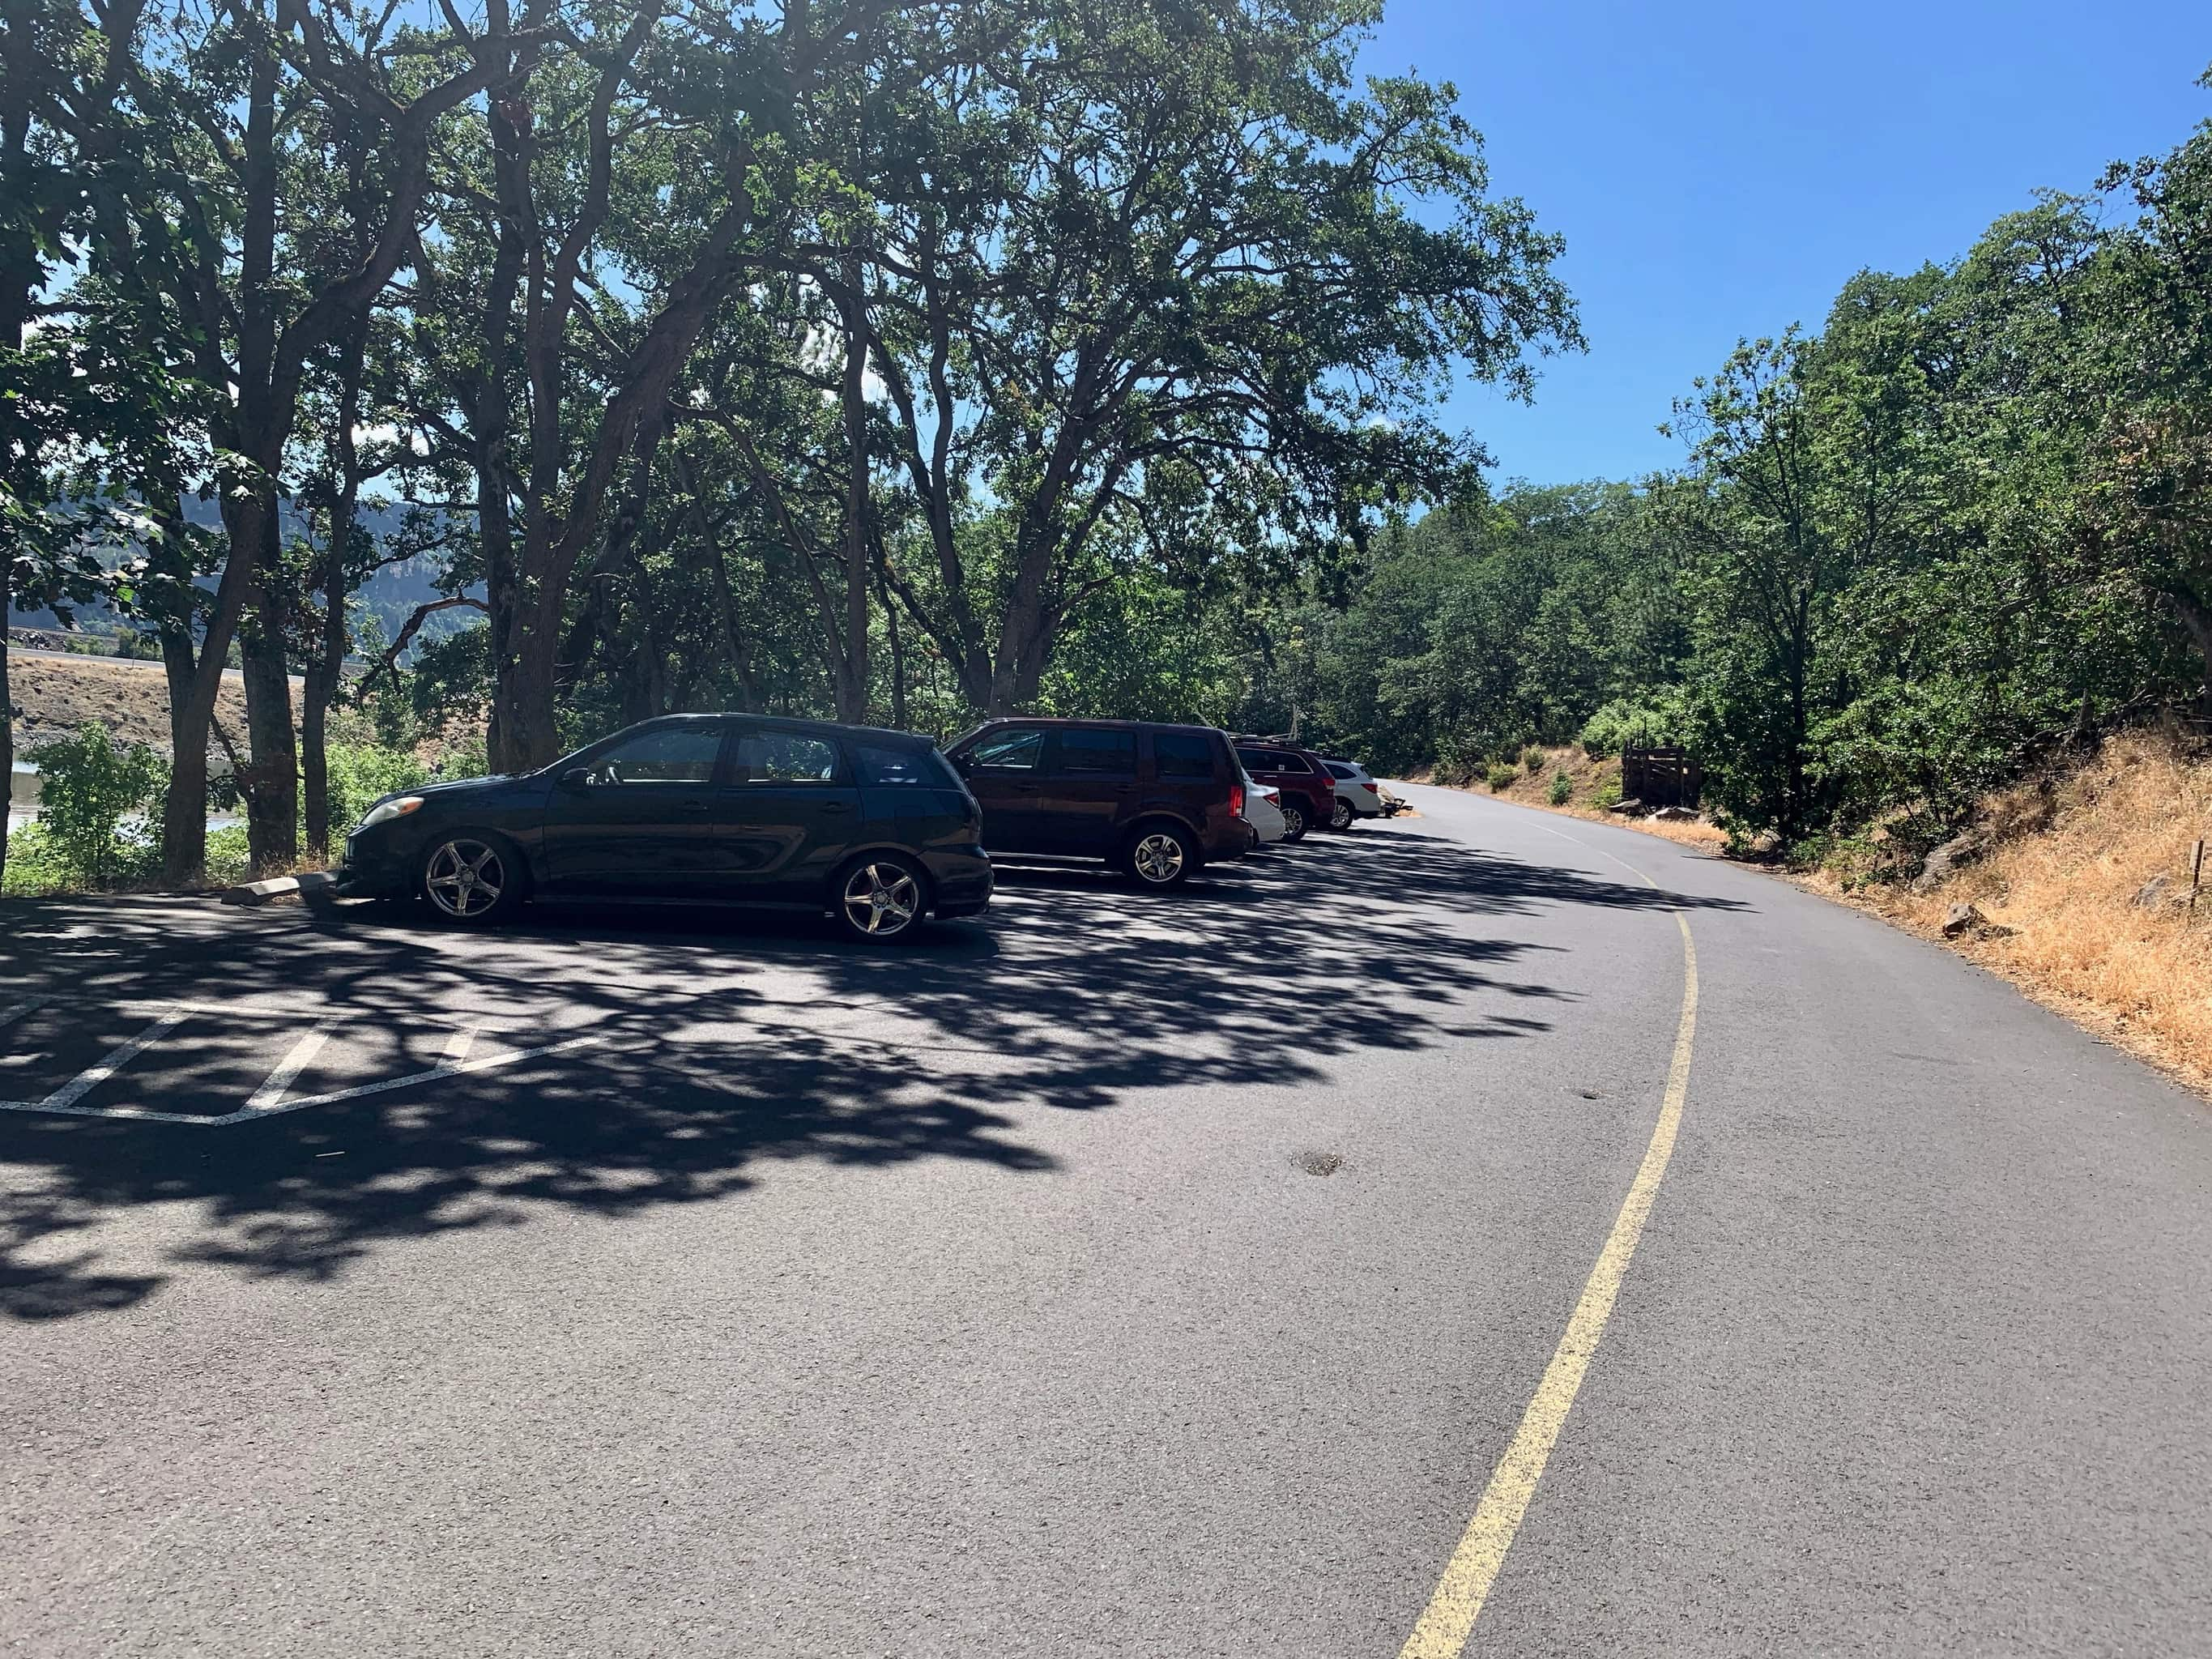 The parking lot at Coyote Wall at the intersection of Highway 14 and Courtney road.